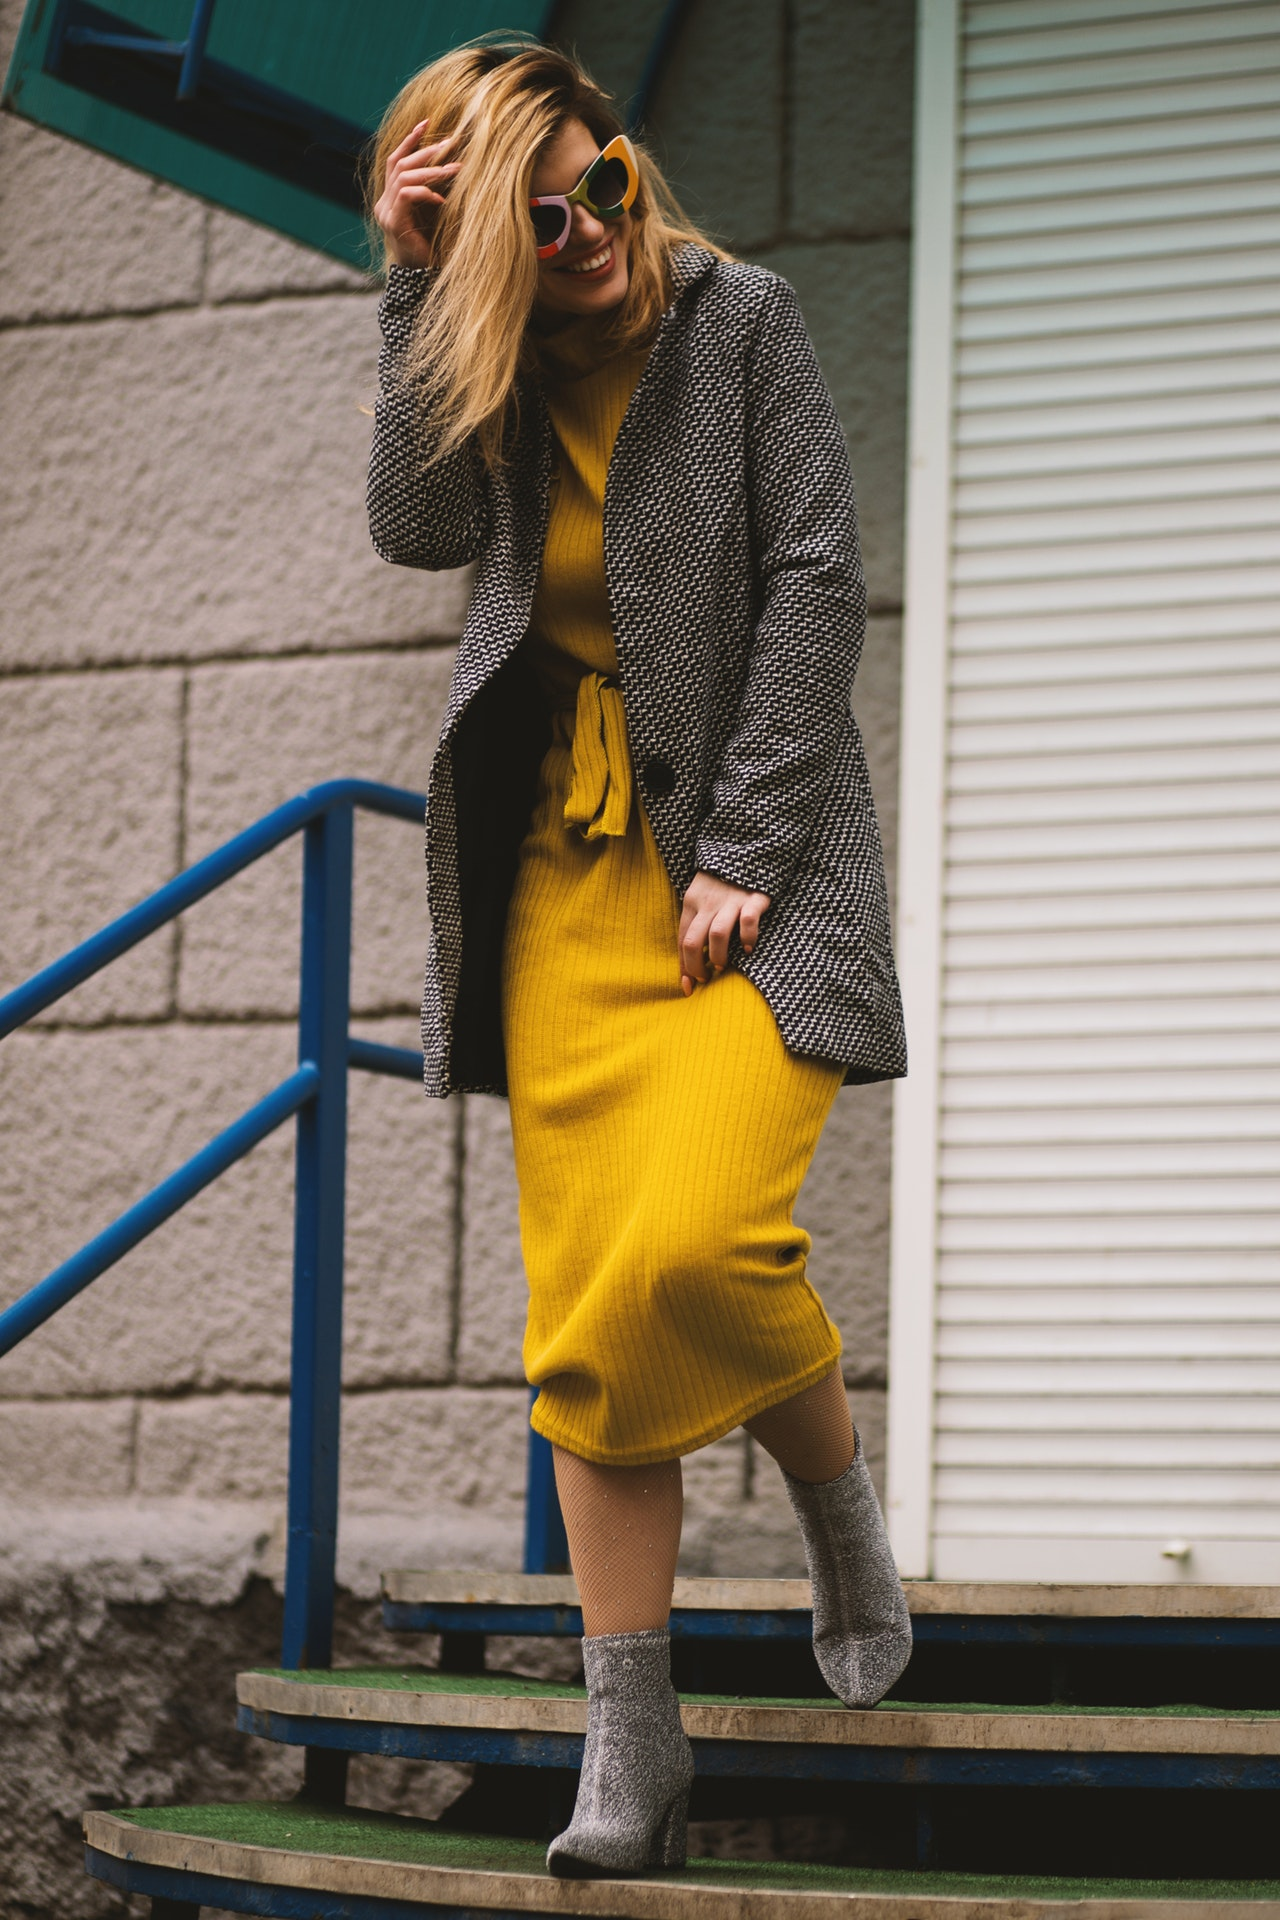 woman wearing a yellow knit dress